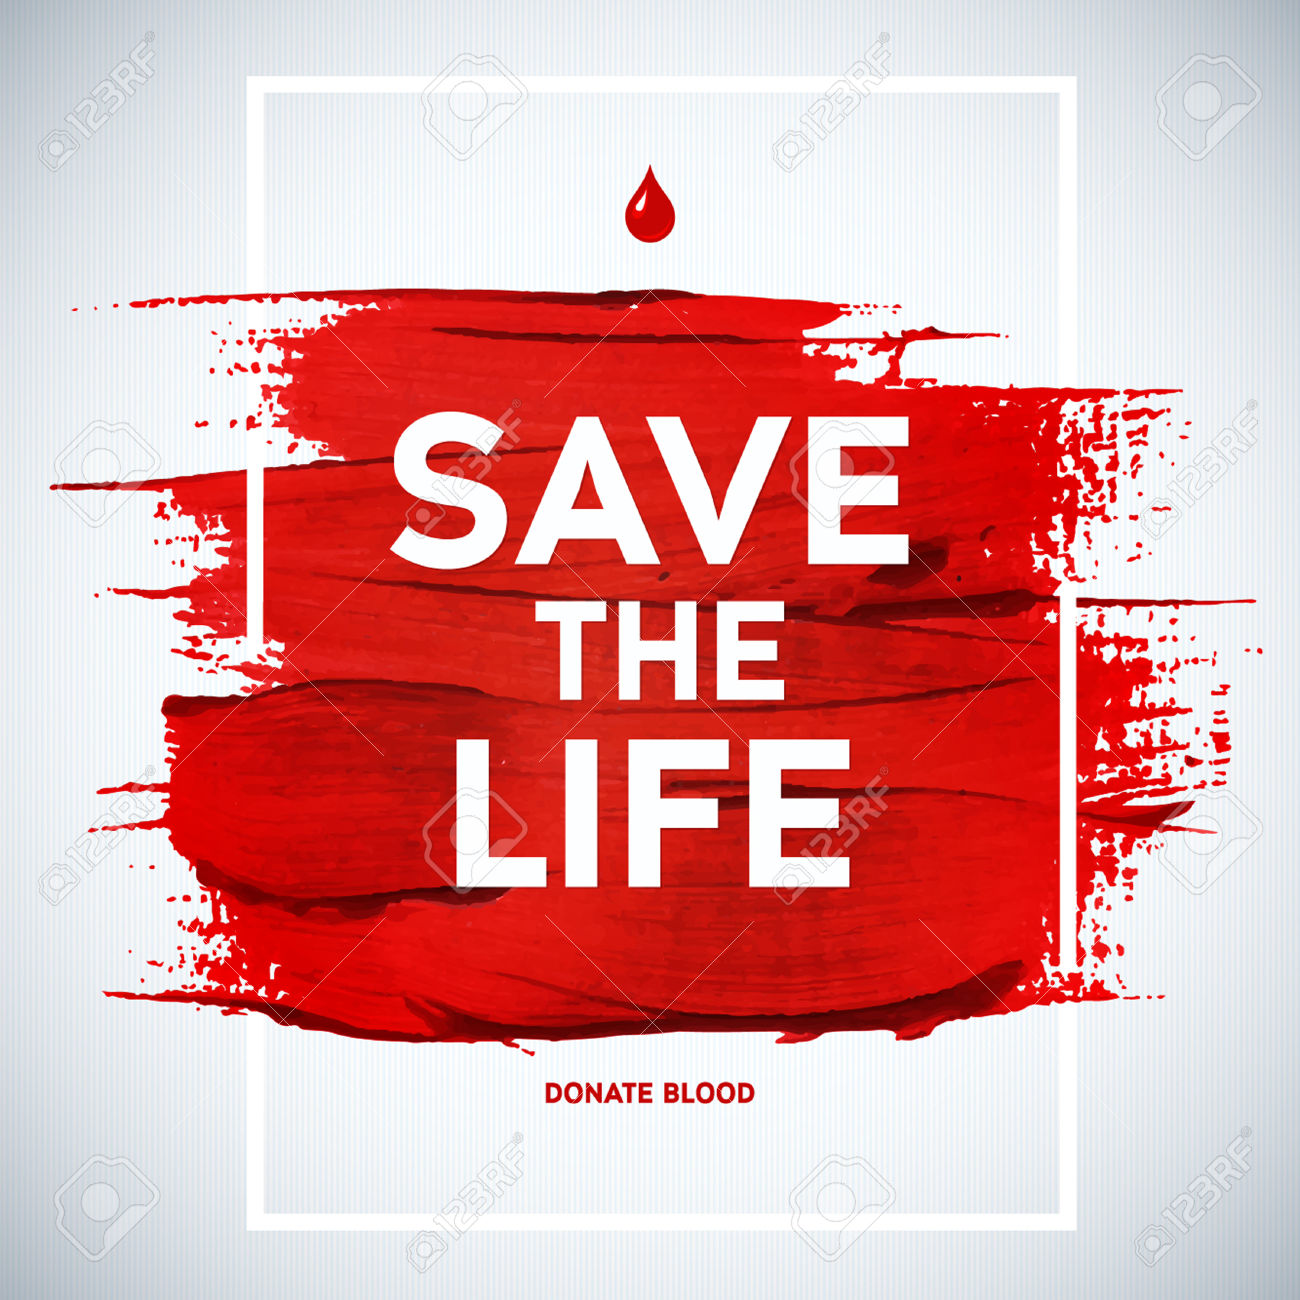 give blood save life The need for blood continues to rise, and yet fewer than 4 out of every 10 people in the us are eligible to donate blood and less than 1 in 10 actually donate together, we can do better.